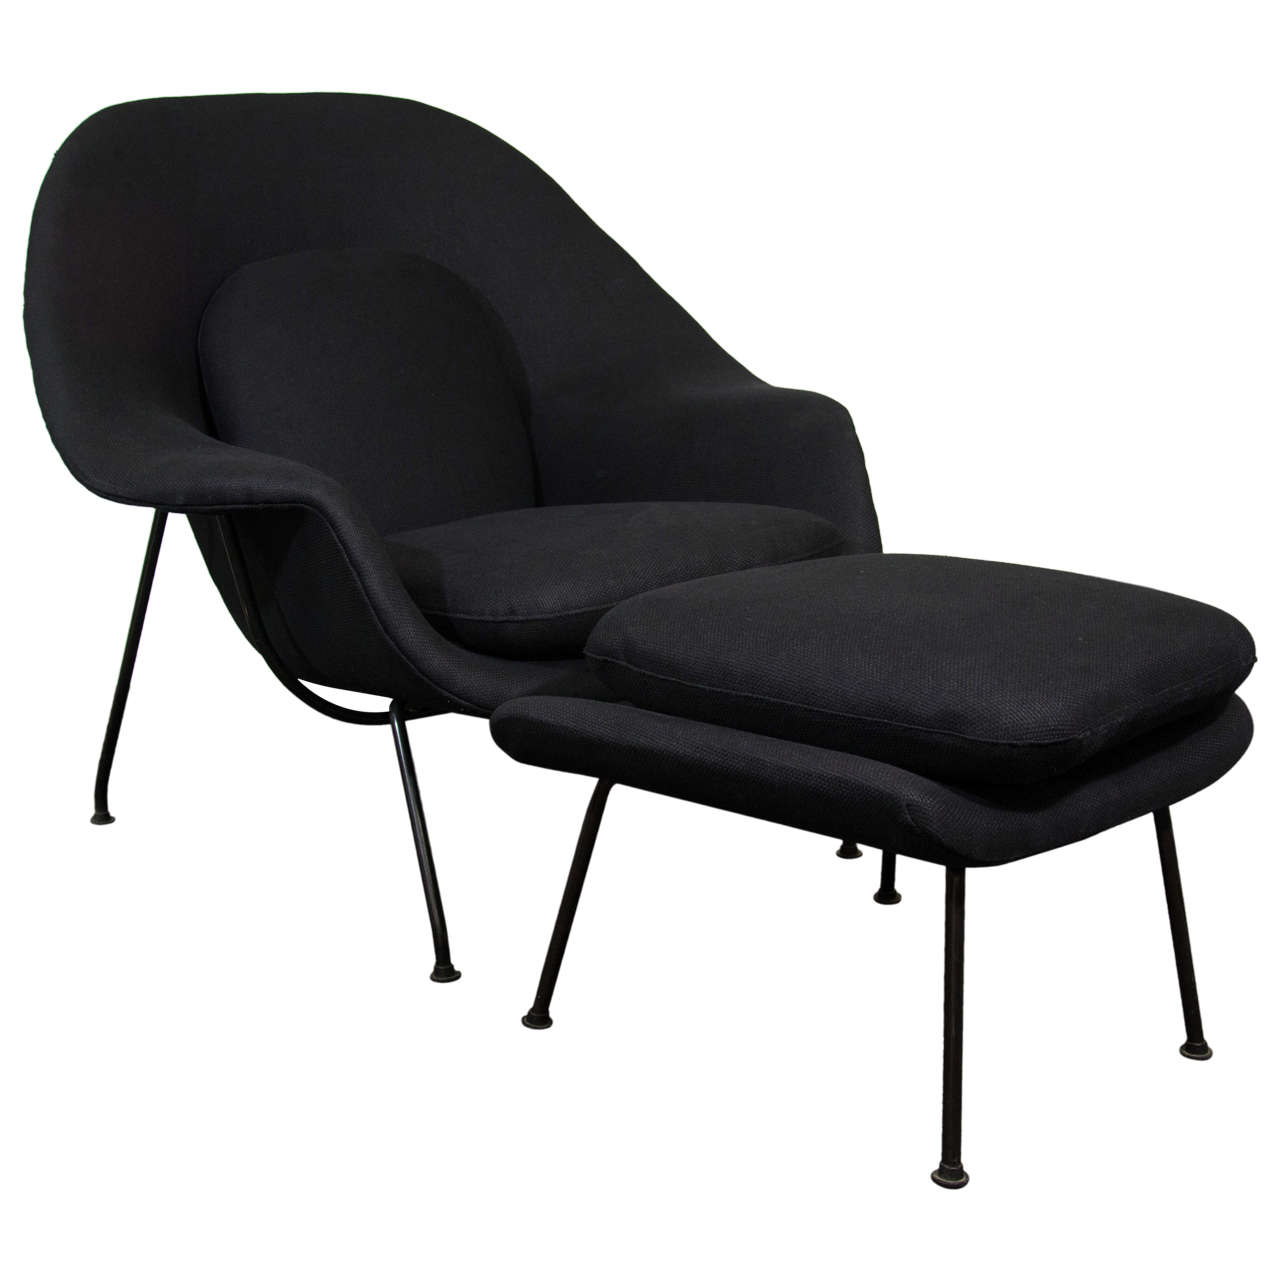 Midcentury Womb Chair And Ottoman By Eero Saarinen For Knoll For Sale